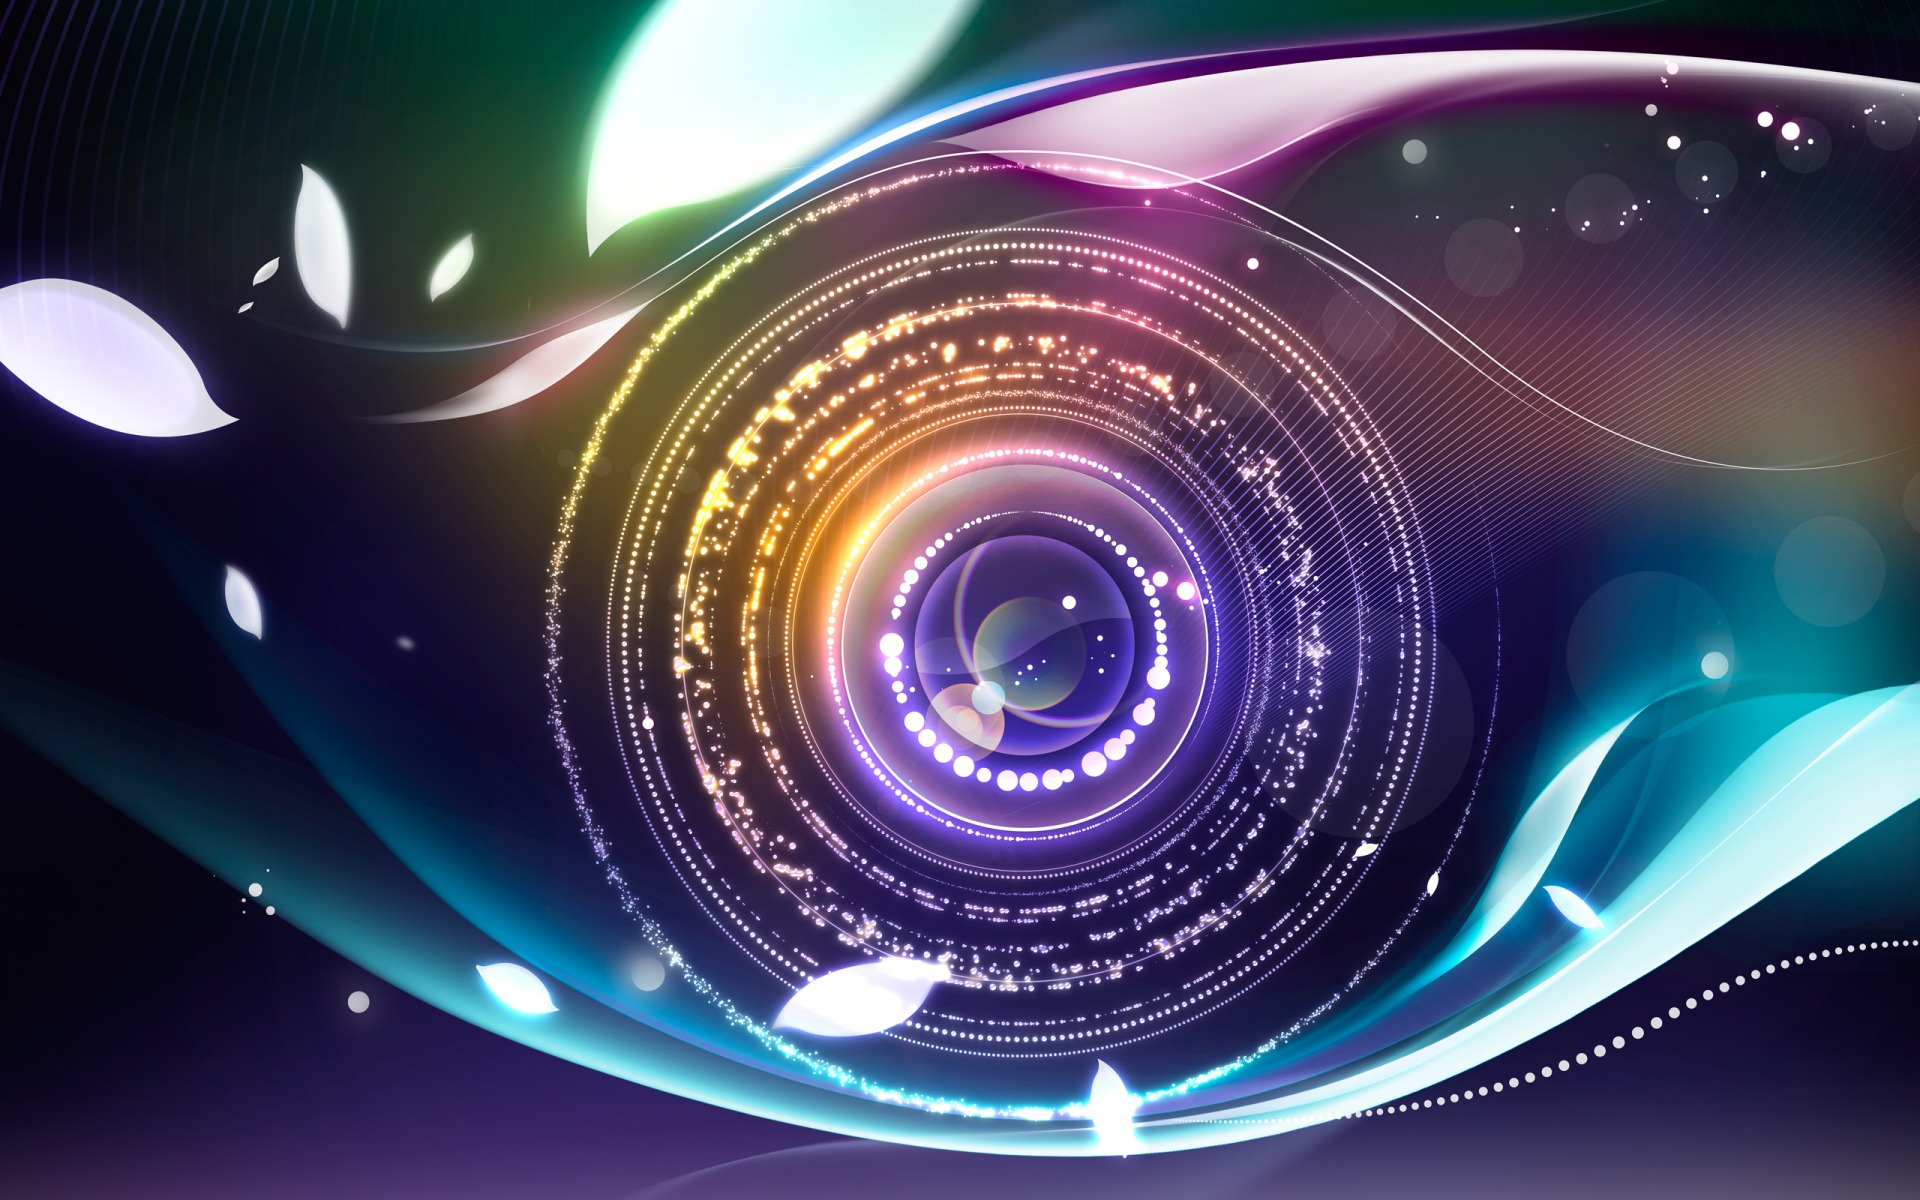 Digital Abstract Eye Wallpapers HD Wallpapers 1920x1200